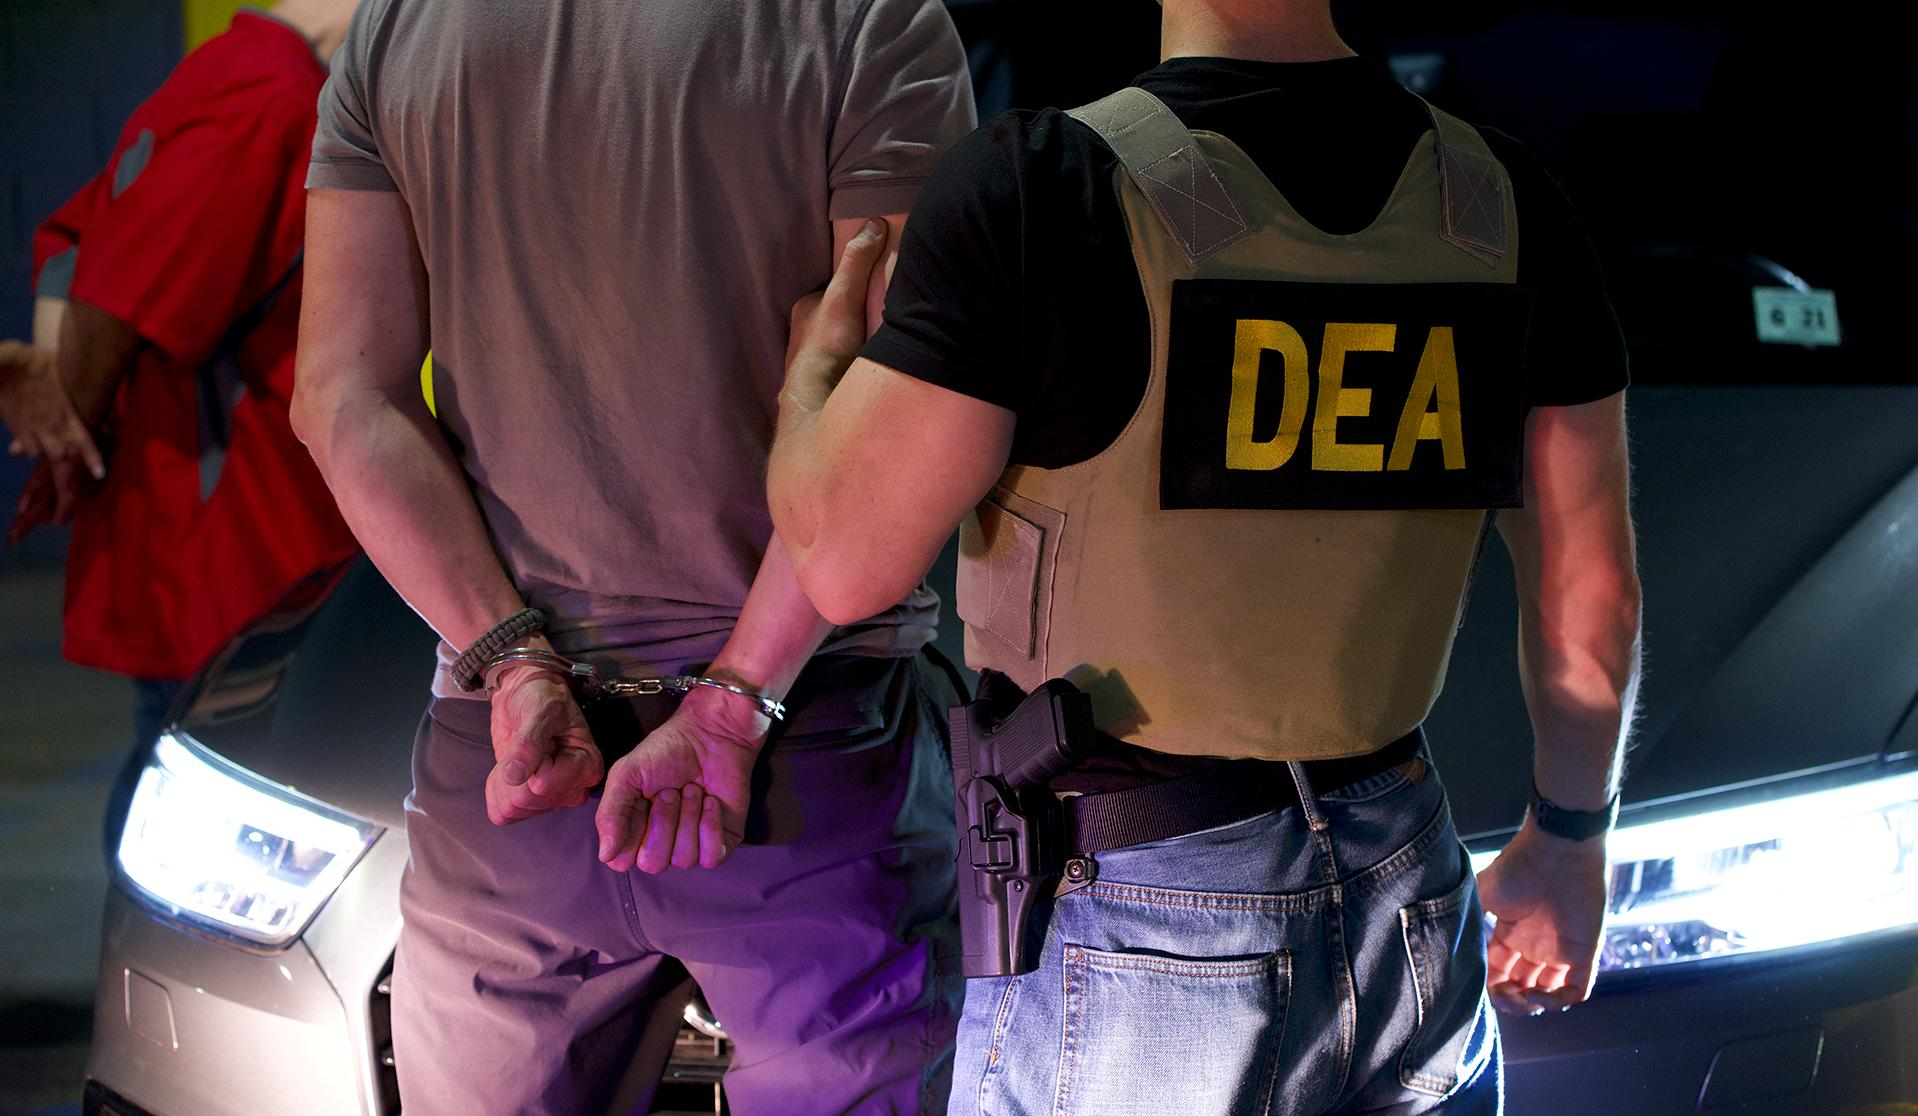 If you've got a passion for justice, make it pay off in the DEA.